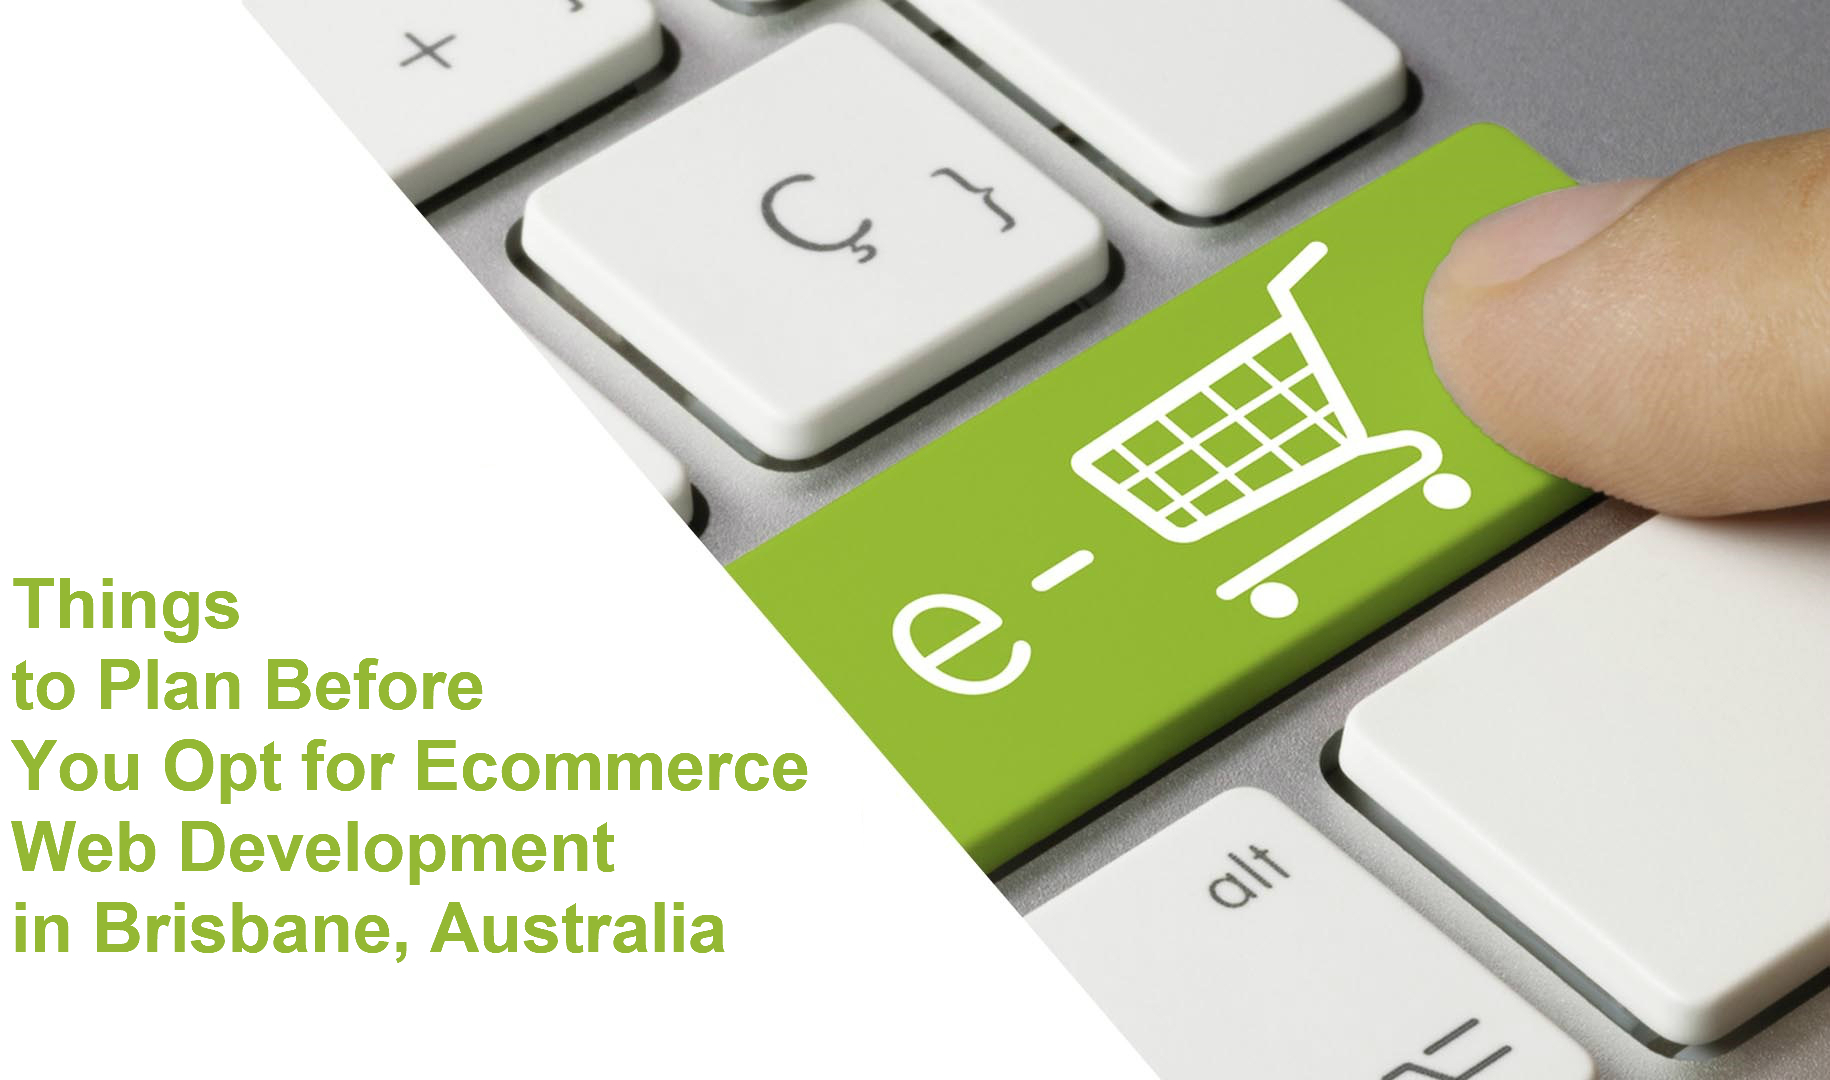 Things to Plan Before You Opt for Ecommerce Web Development in Brisbane, Australia